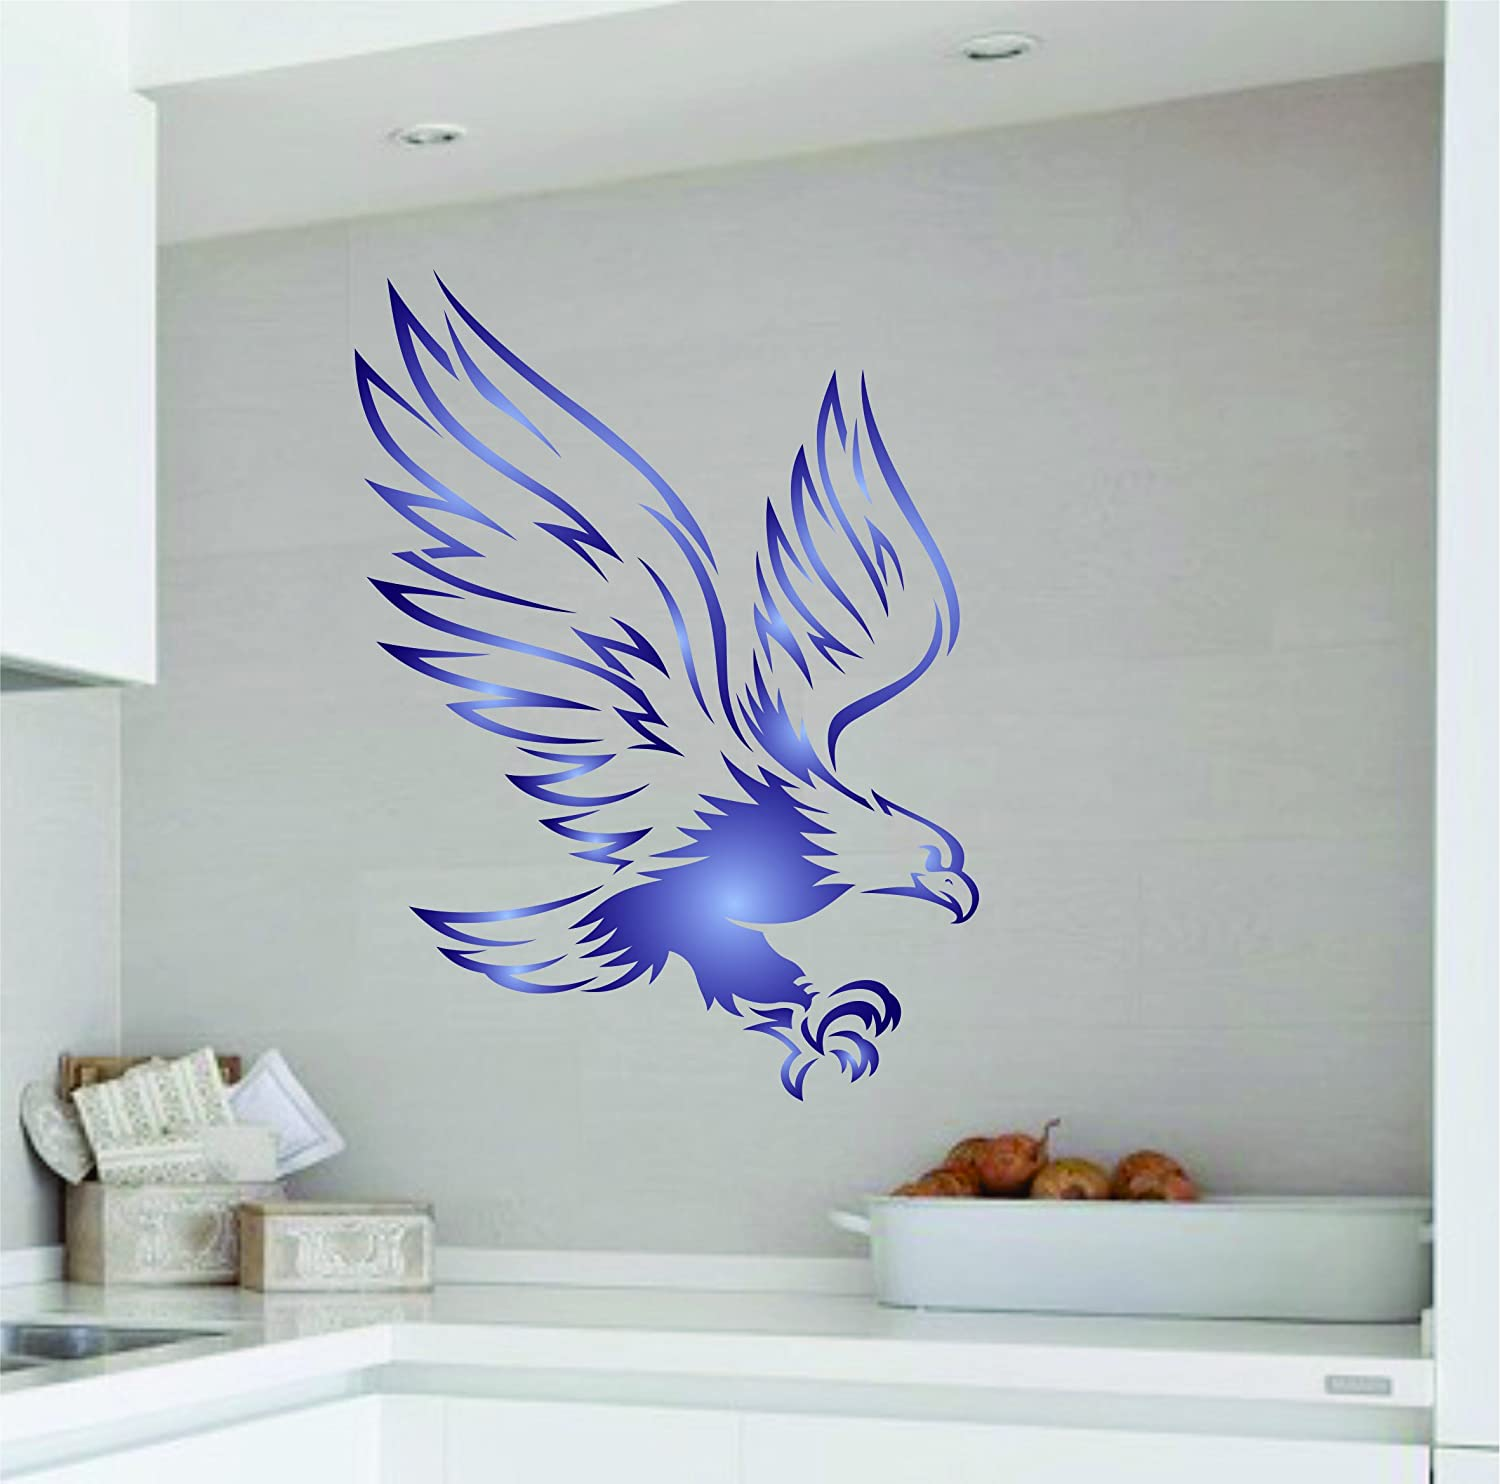 11.5 x 15cm Eagle Stencil Use on Paper Projects Scrapbook Bullet Journal Walls Floors Fabric Furniture Glass Wood etc. - Reusable Bird Animal Wildlife Wall Stencil Template S